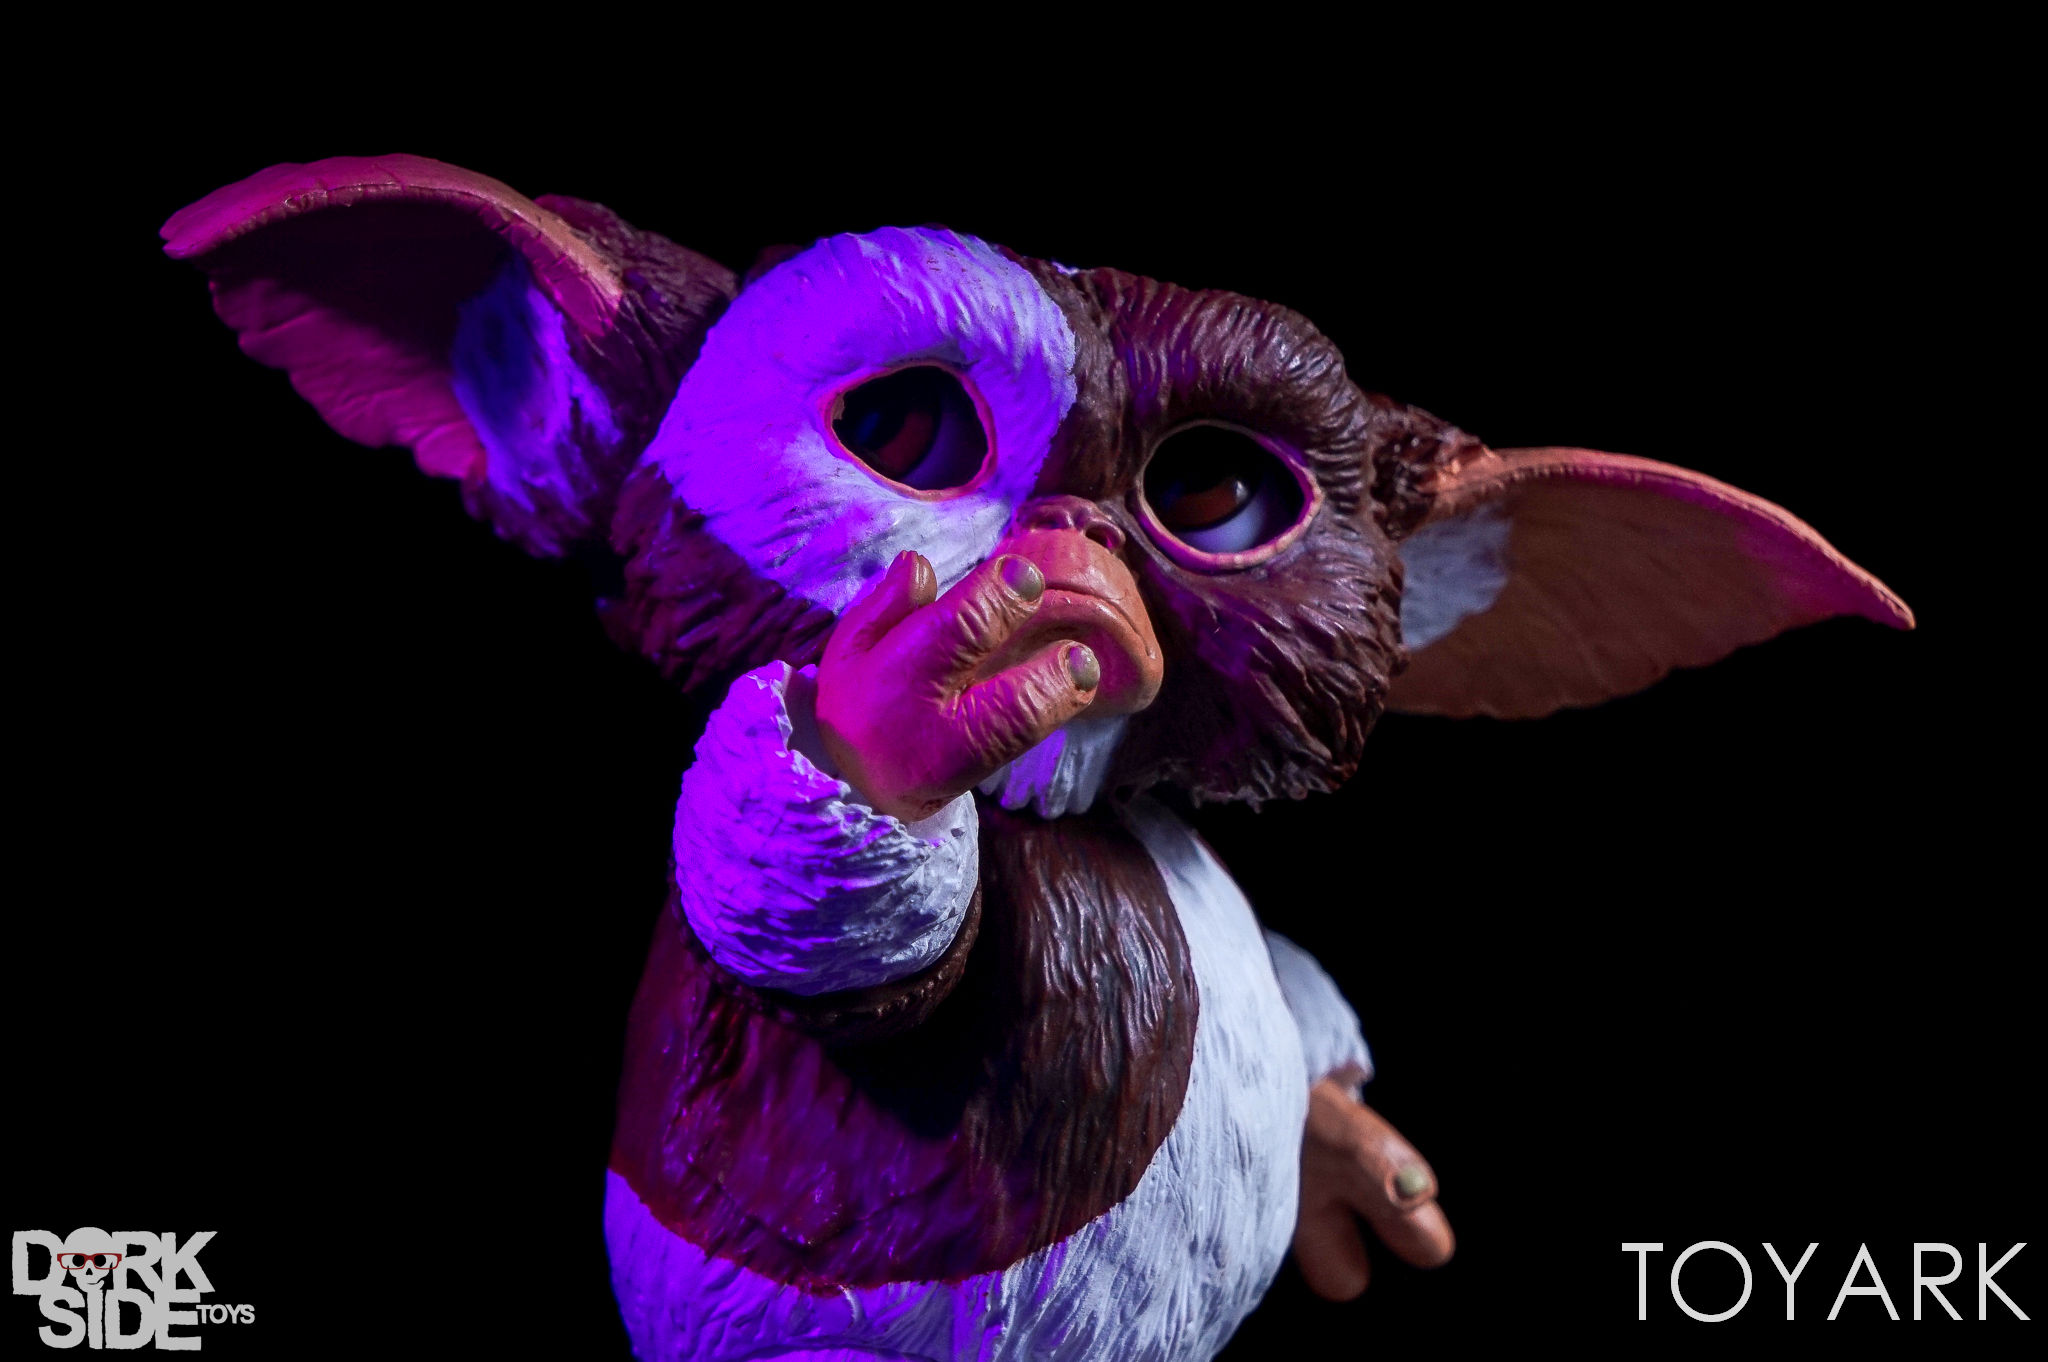 http://news.toyark.com/wp-content/uploads/sites/4/2017/04/NECA-Gremlins-Ultimate-Gizmo-034.jpg